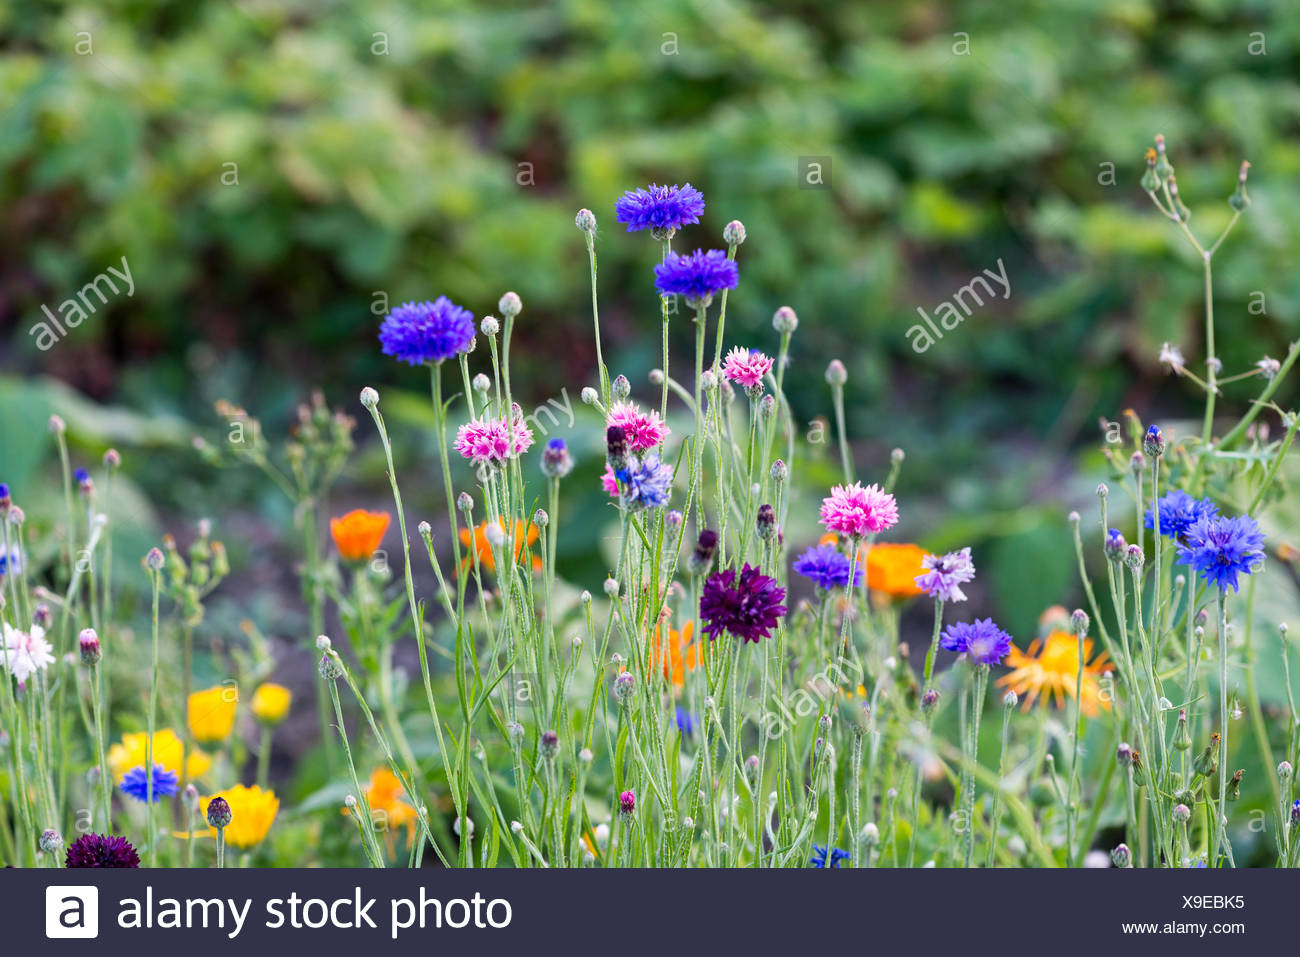 Wild flowers in a field - Stock Image